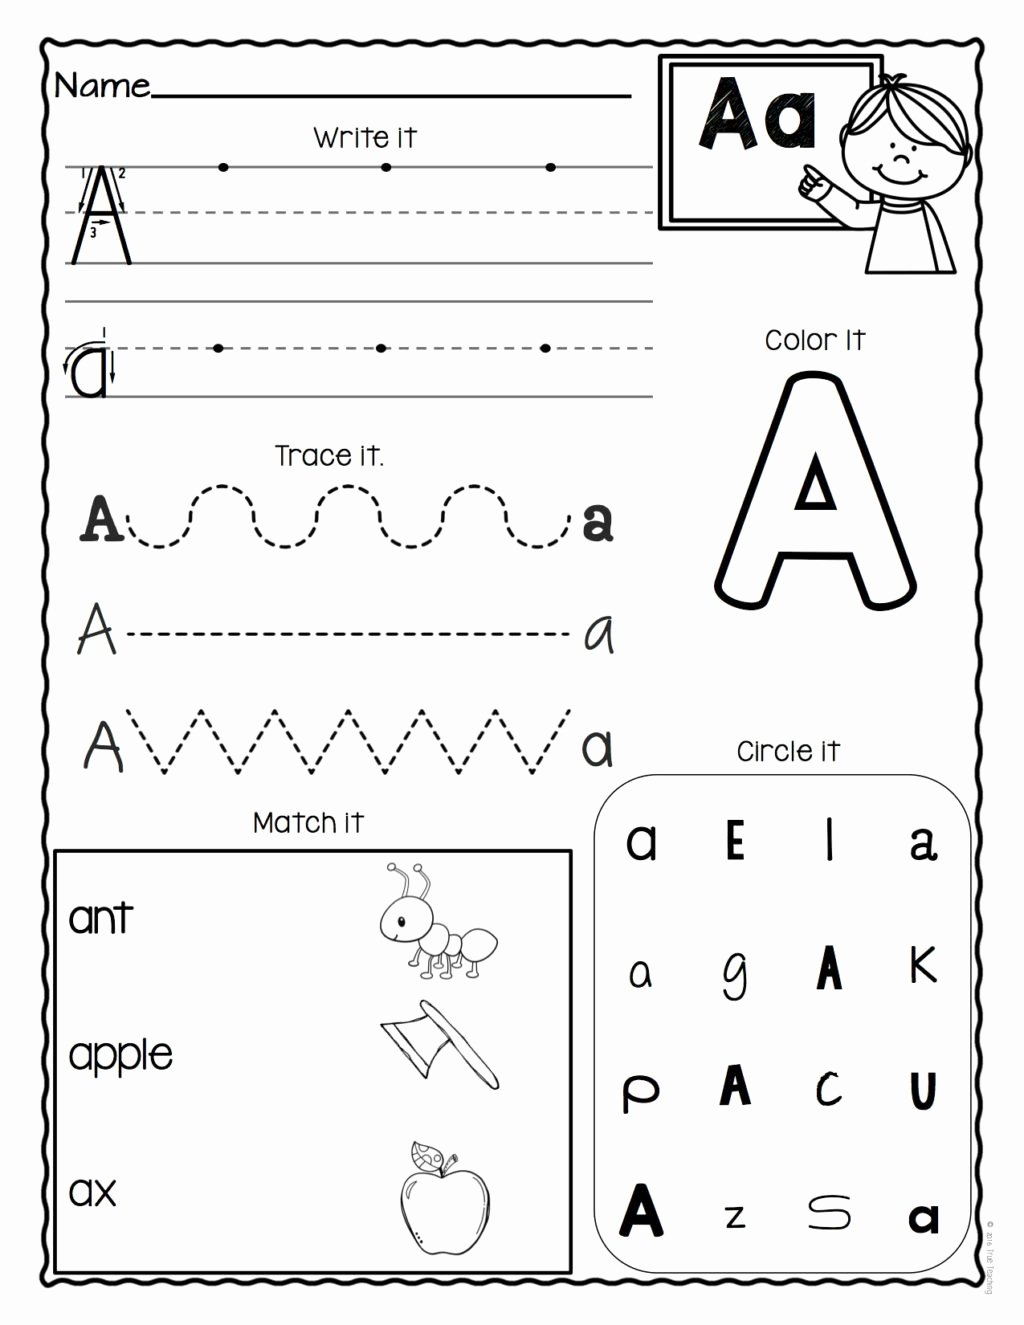 Letter A Worksheets for Preschoolers Free Inspirational Worksheet Worksheetool Letter Worksheets Z Set for Free